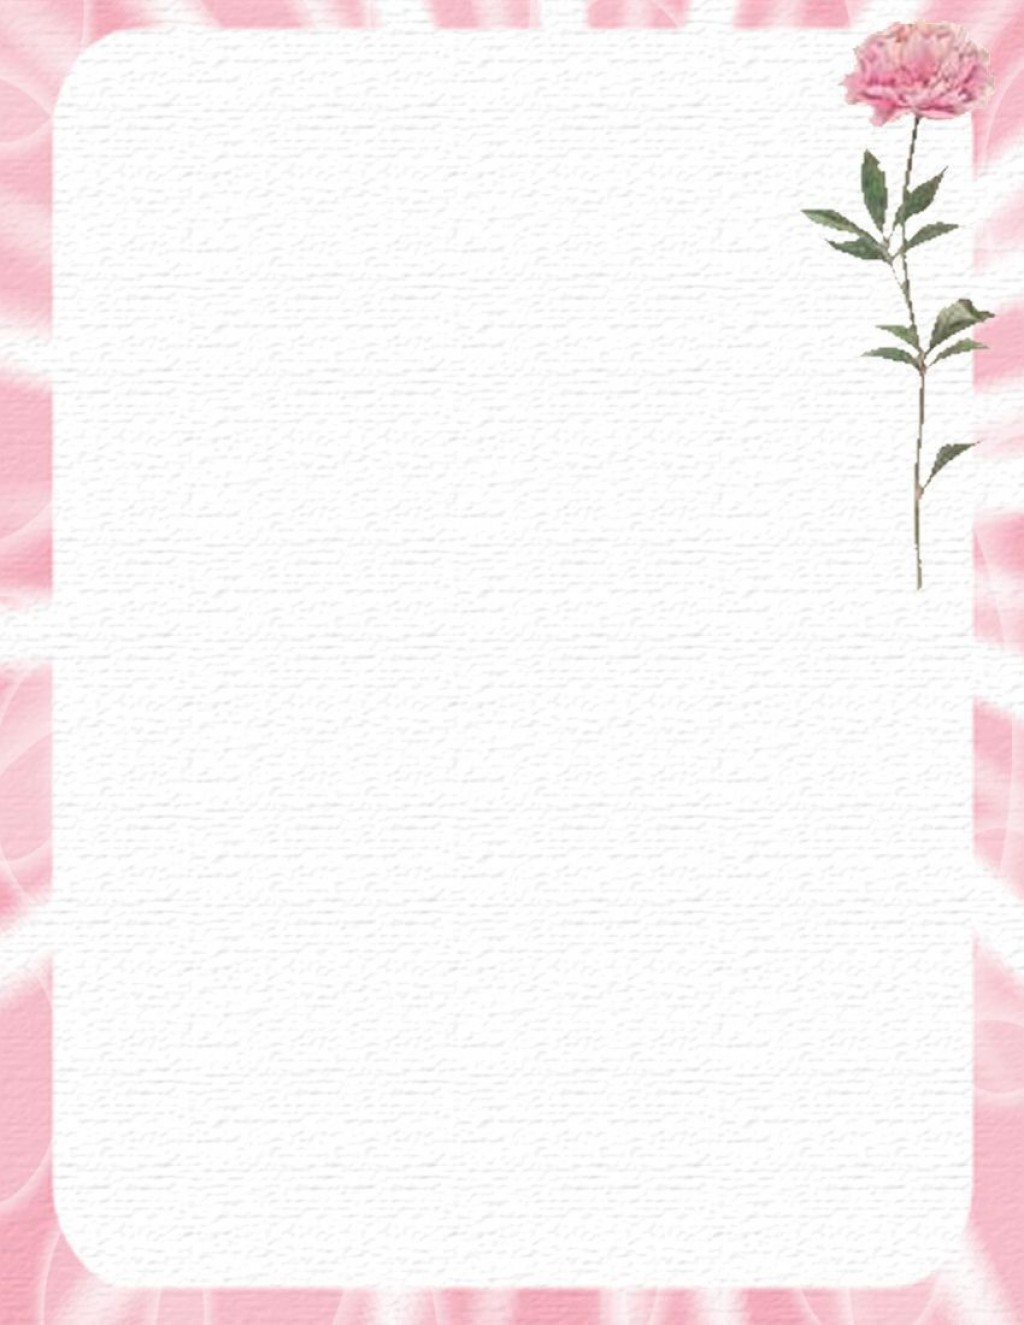 005 Outstanding Free Printable Stationery Paper Template High Def  TemplatesLarge